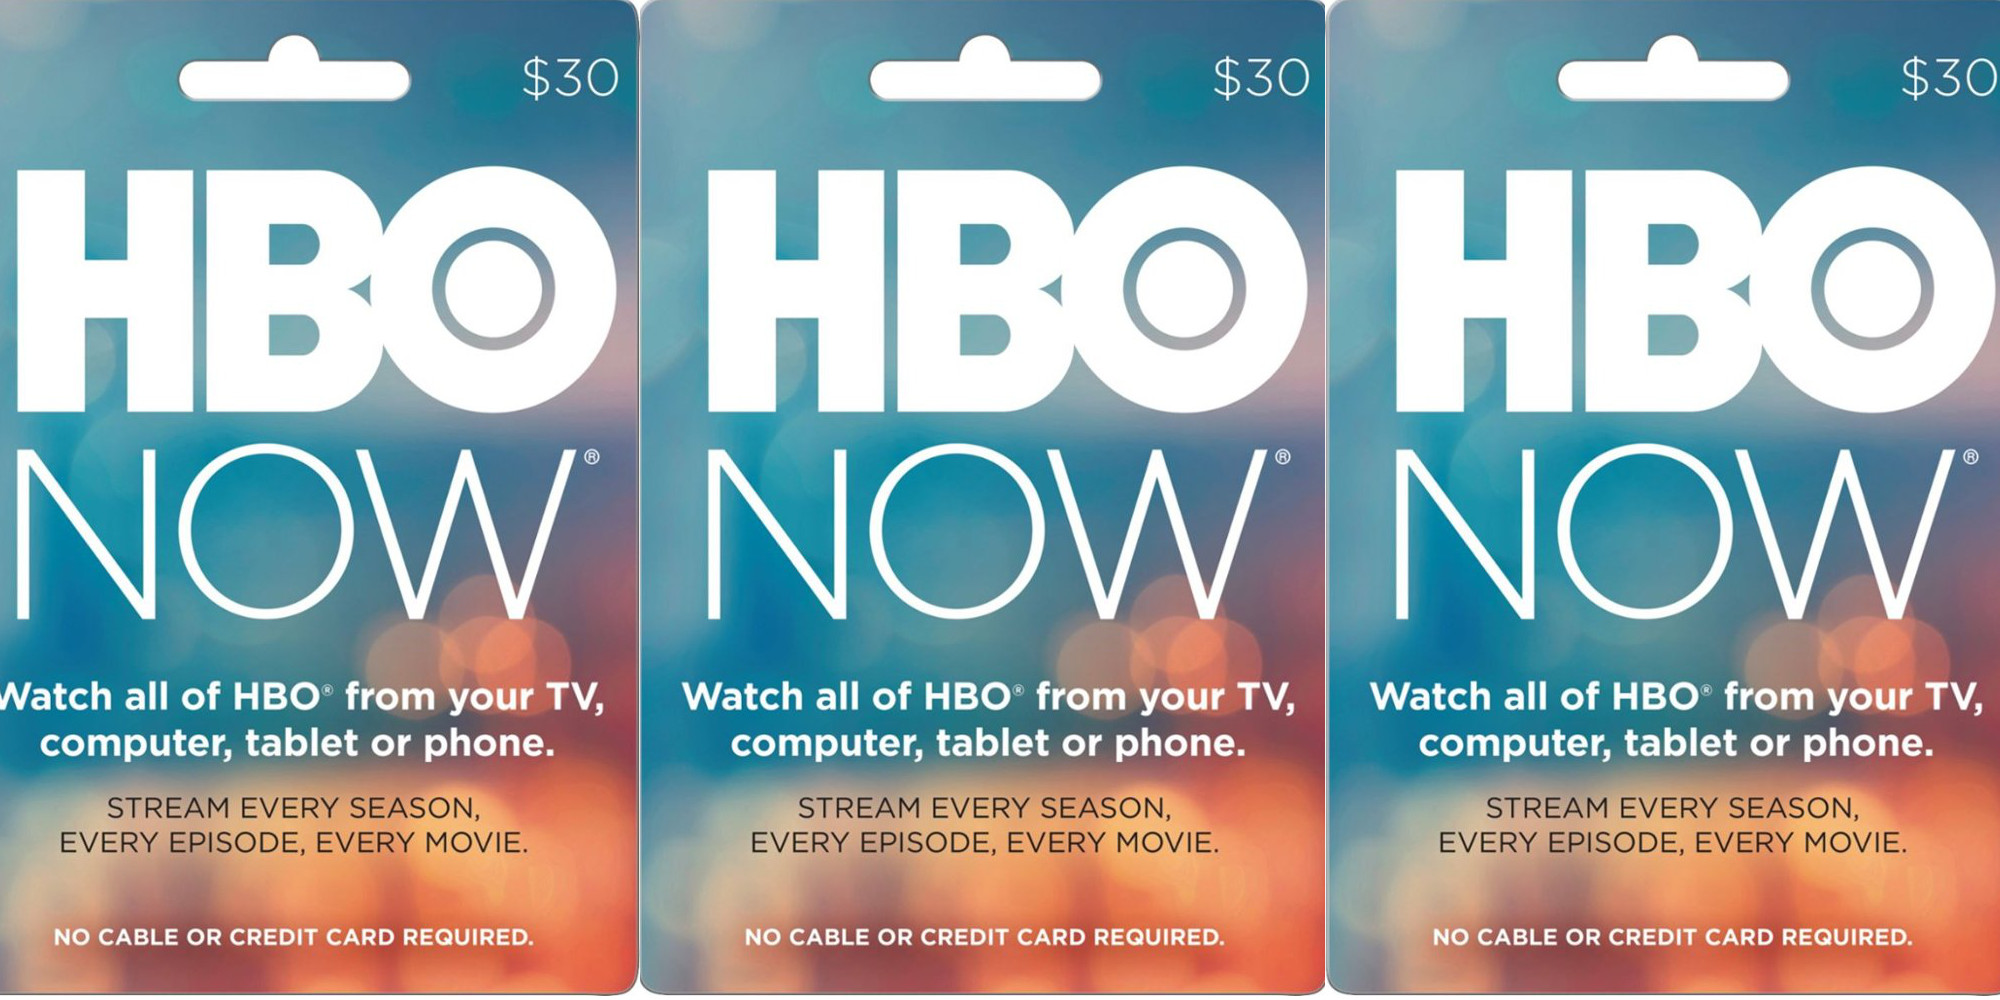 Gift cards at up to 20% off: HBO Now, Nintendo eShop, Barnes & Noble, Fanatics, more